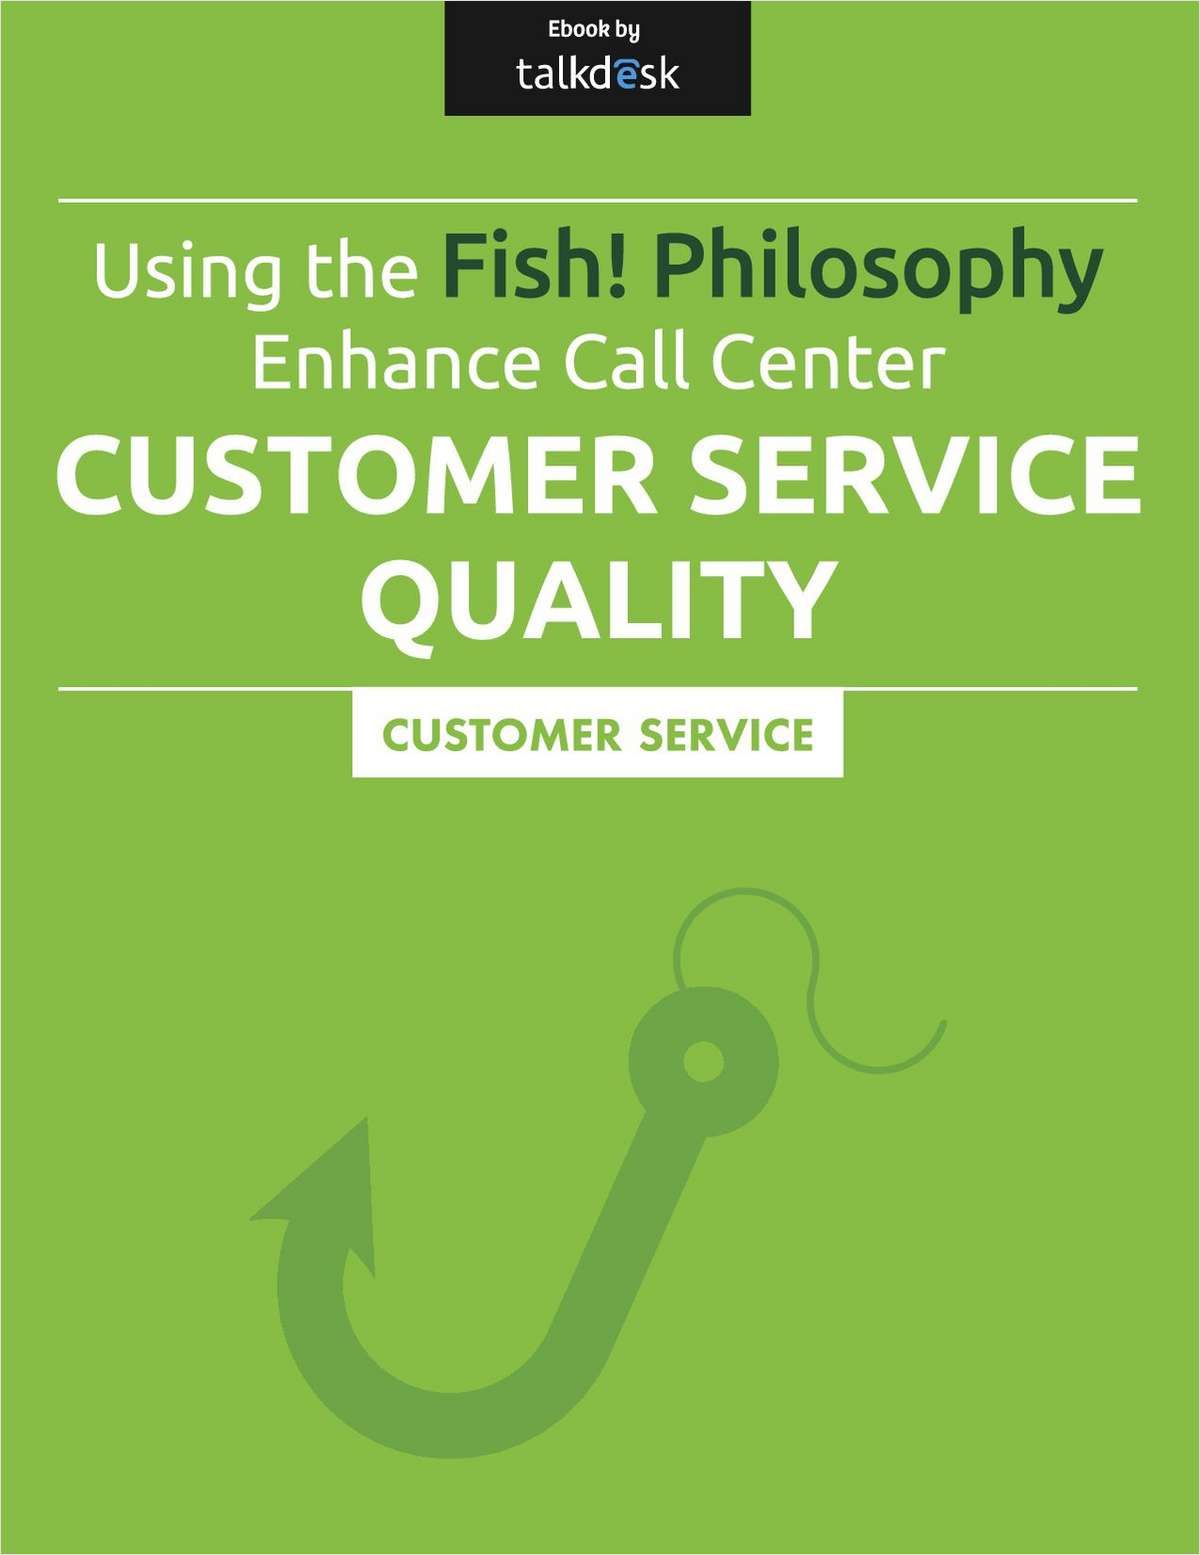 Using the Fish! Philosophy to Enhance Call Center Customer Service Quality